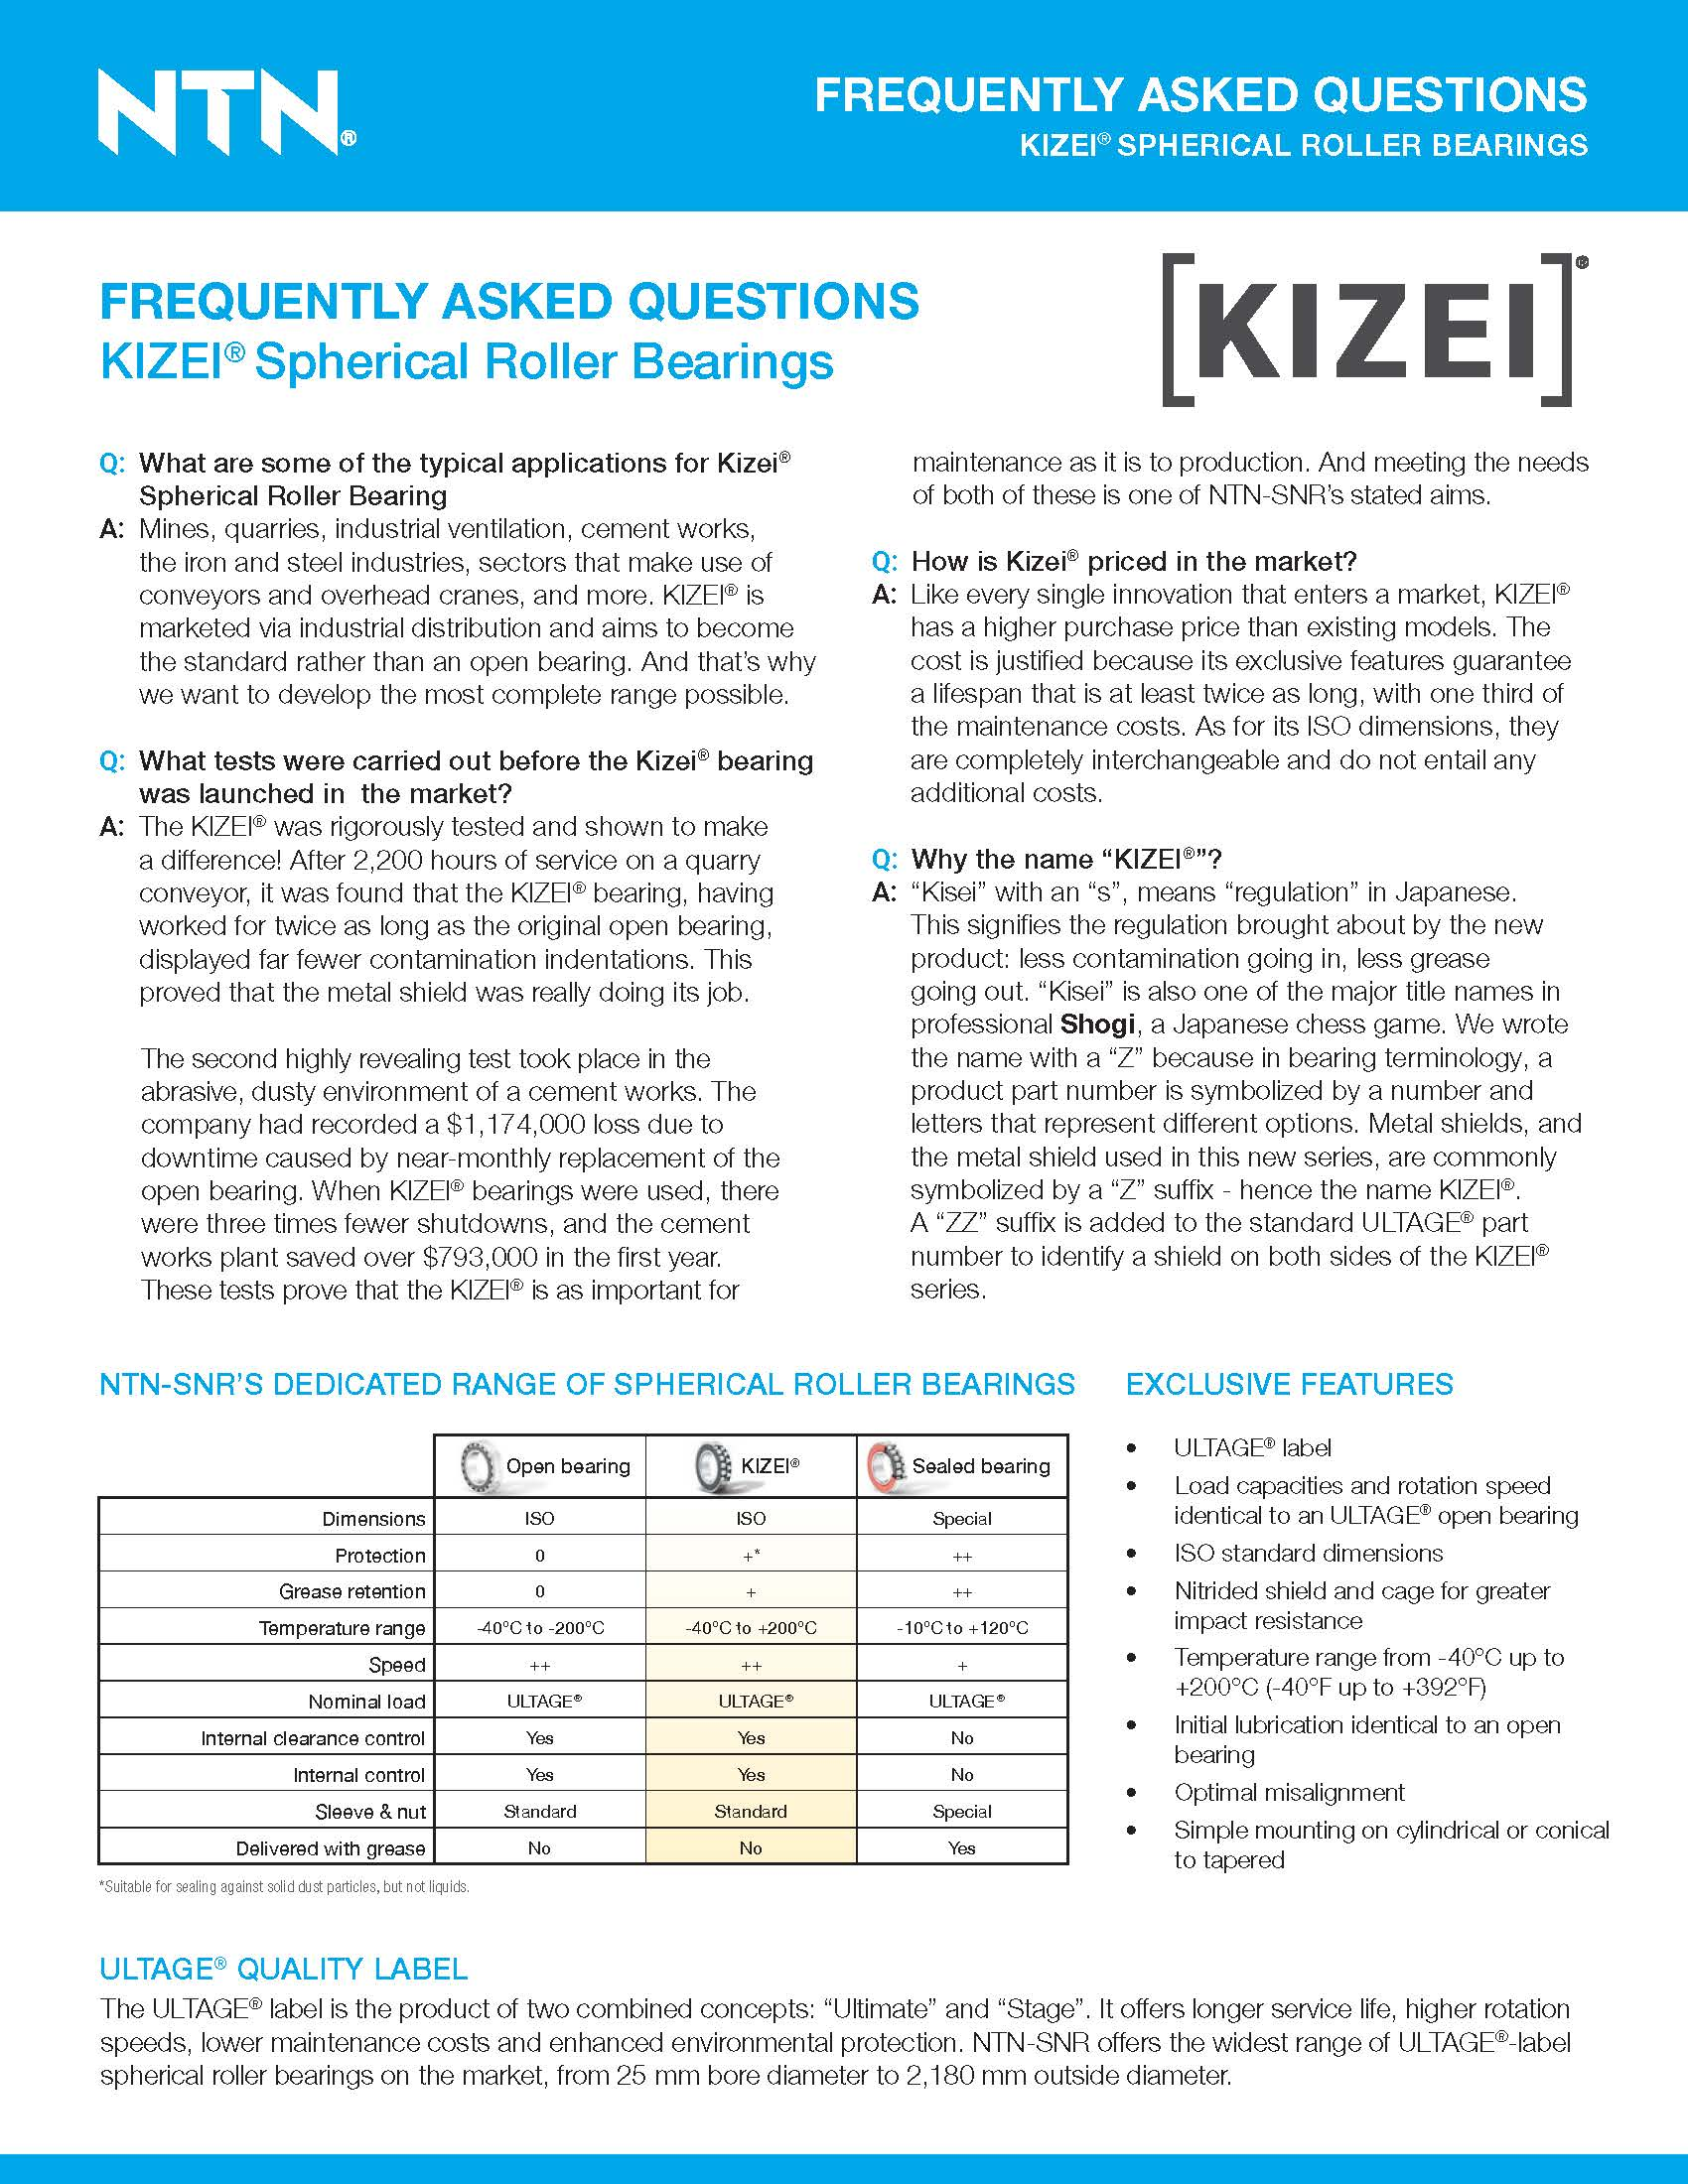 KIZEIFAQ https://ntn.ca/wp content/uploads///NTN KIZEI Spherical Roller Bearing Frequently Asked Questions.pdf